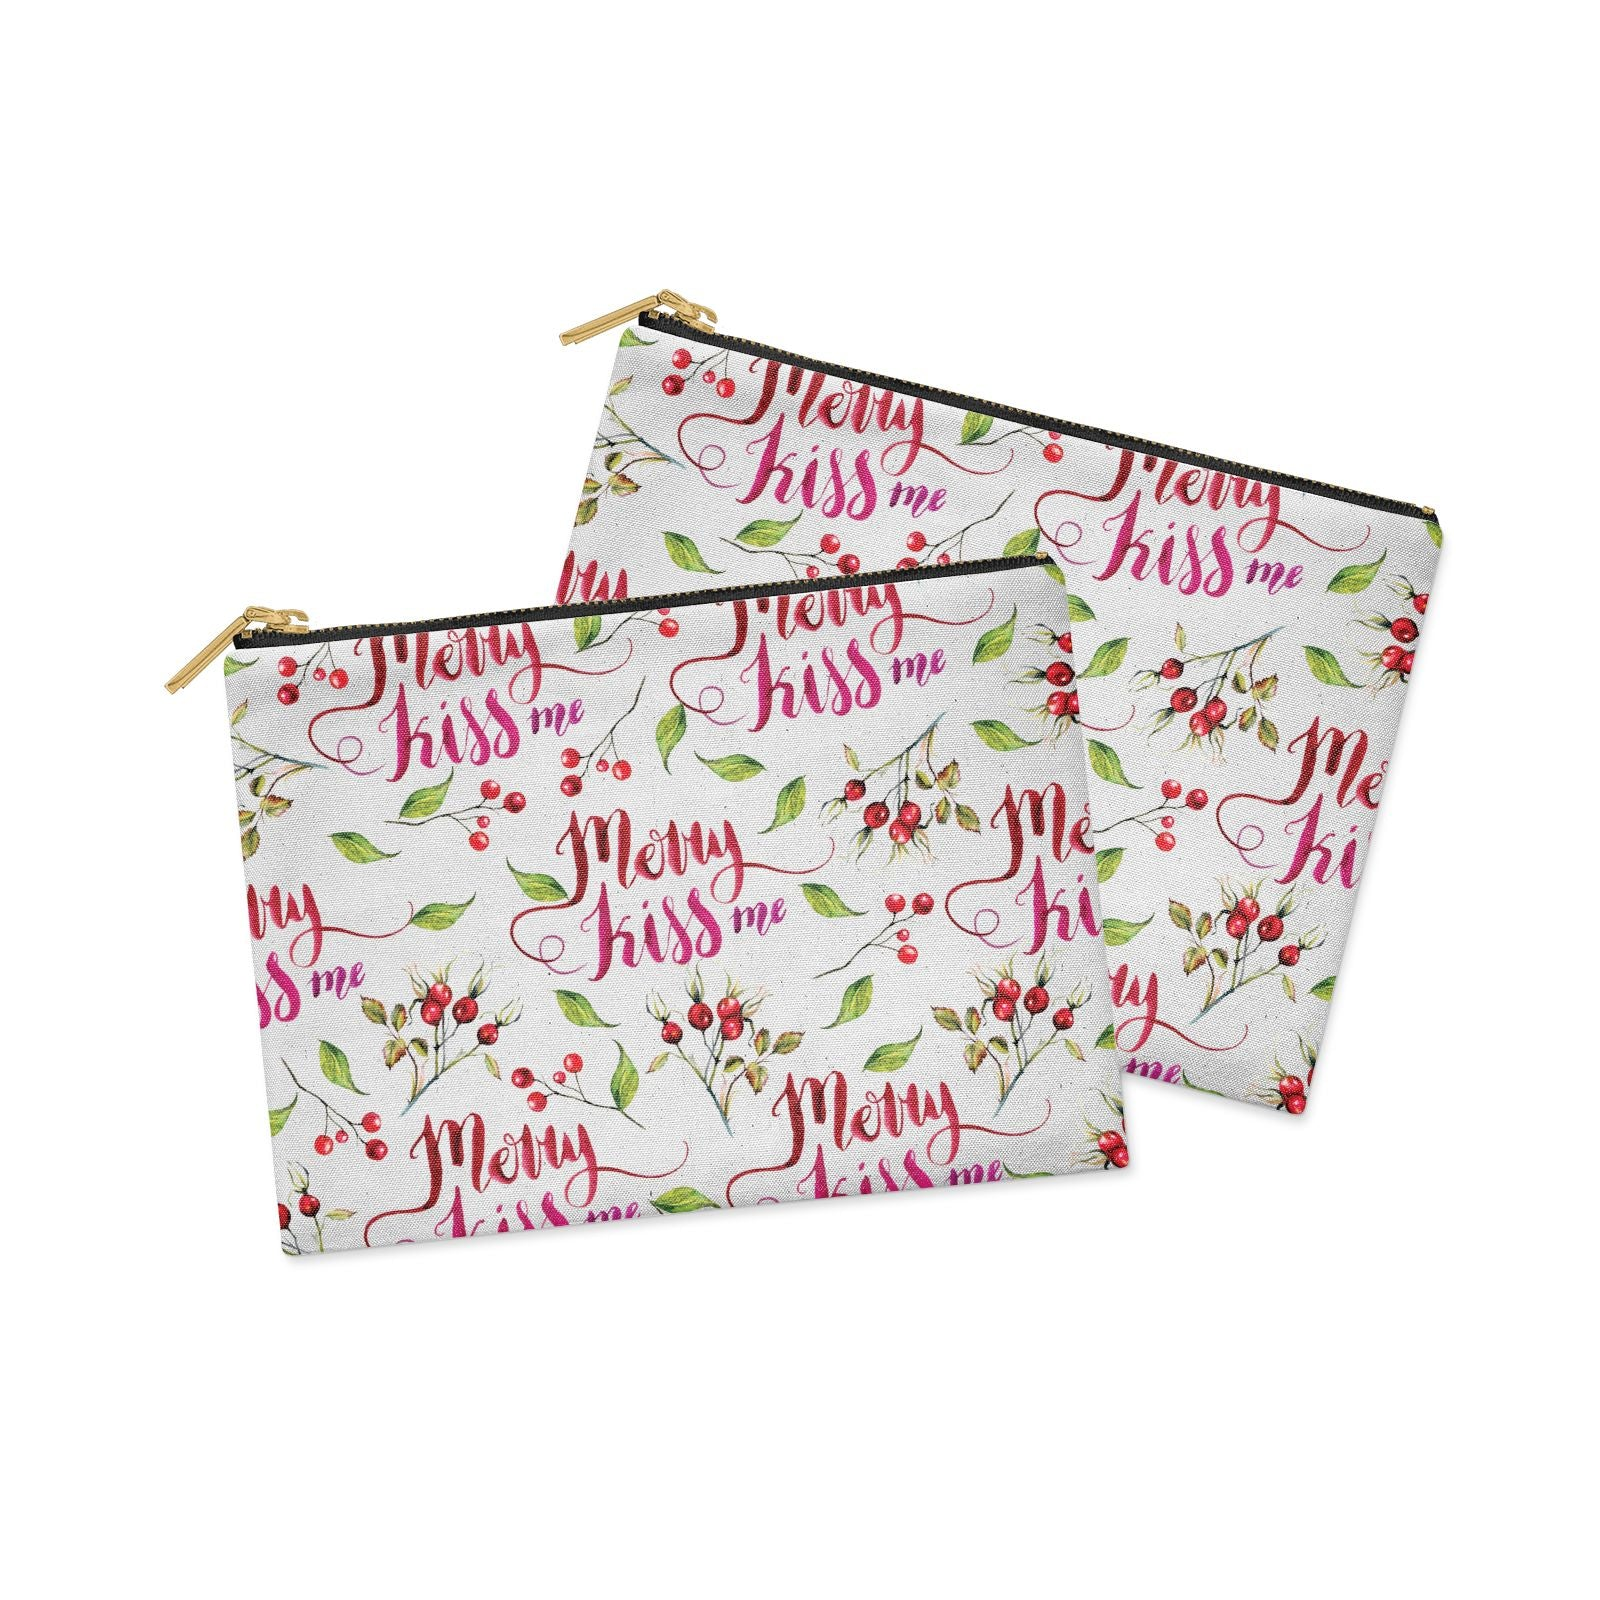 Merry kiss me Clutch Bag Zipper Pouch Alternative View